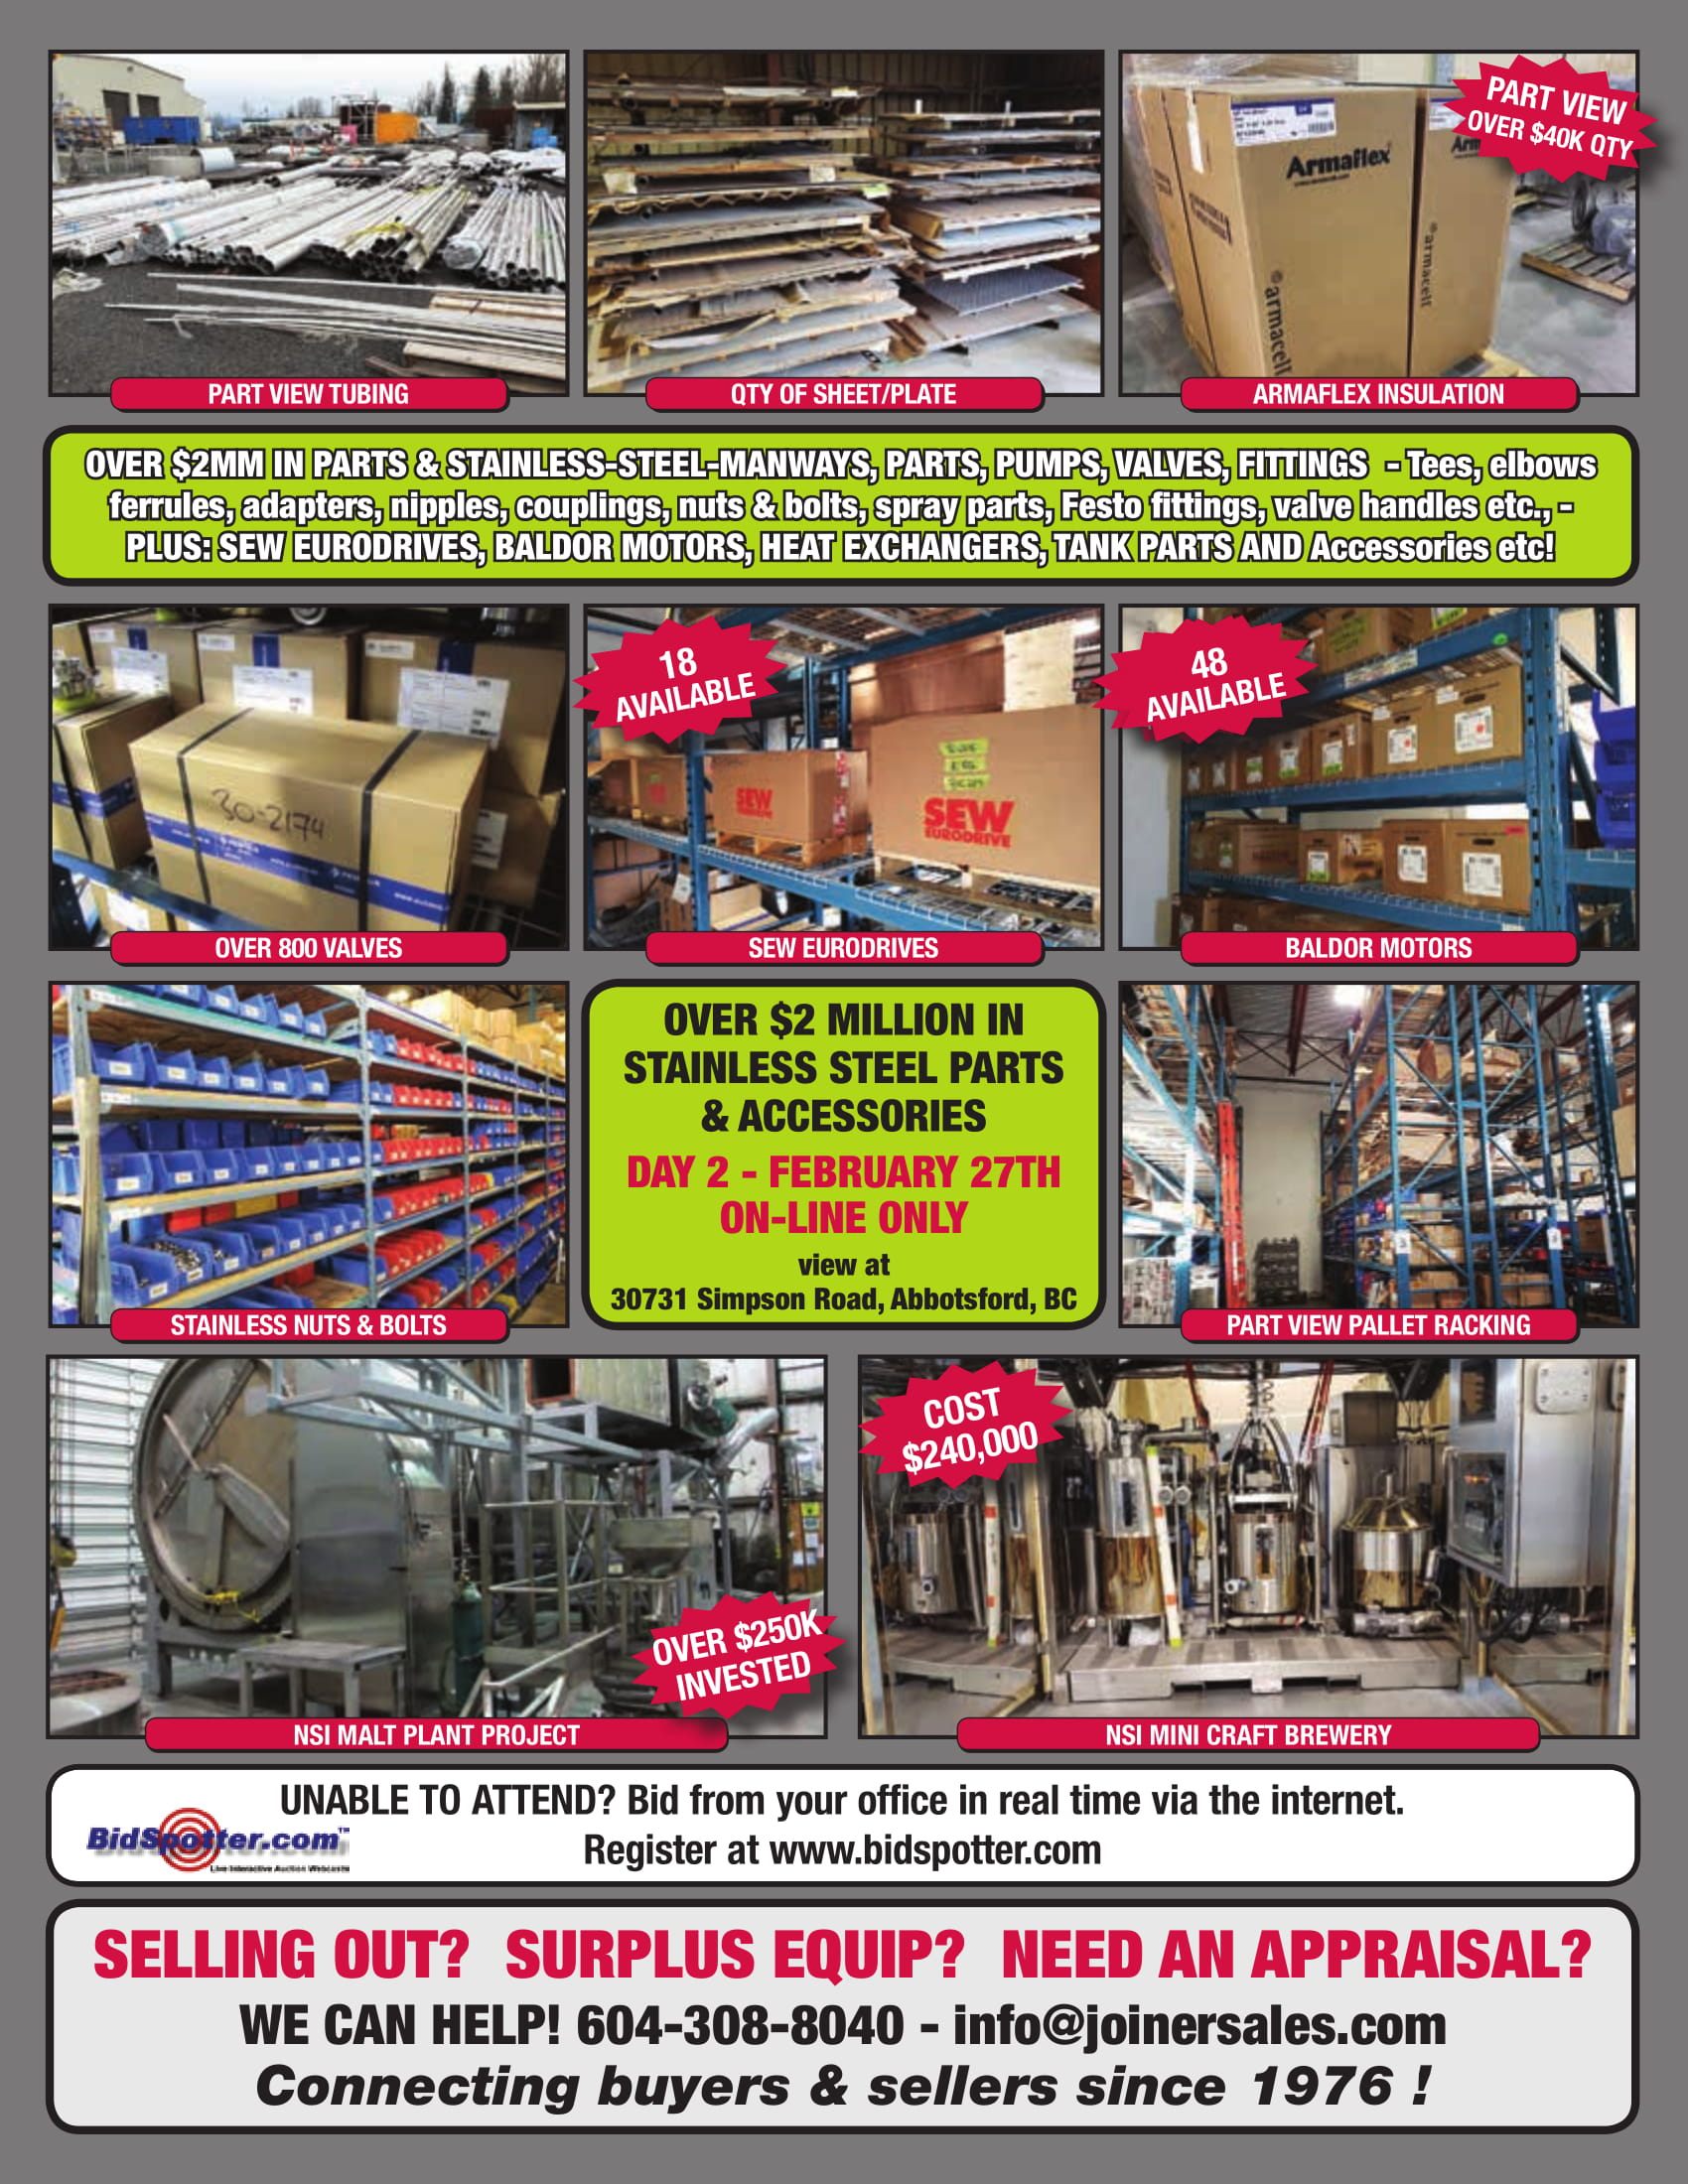 Lot 0 - COMPLETE LOT CATALOG NOW POSTED AND BEING UPDATED DAILY!!!